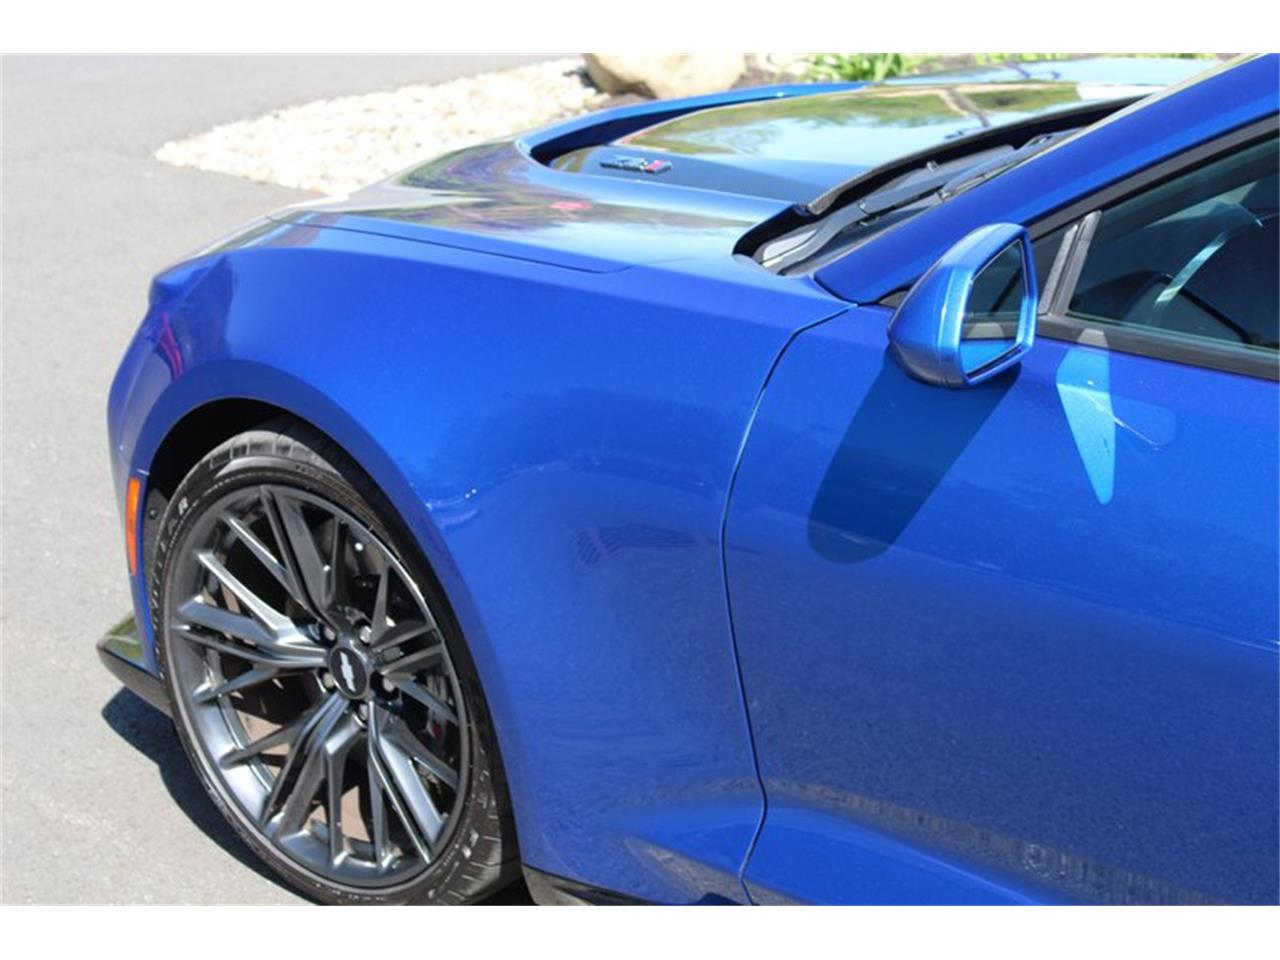 2018 Chevrolet Camaro (CC-1352317) for sale in Clifton Park, New York